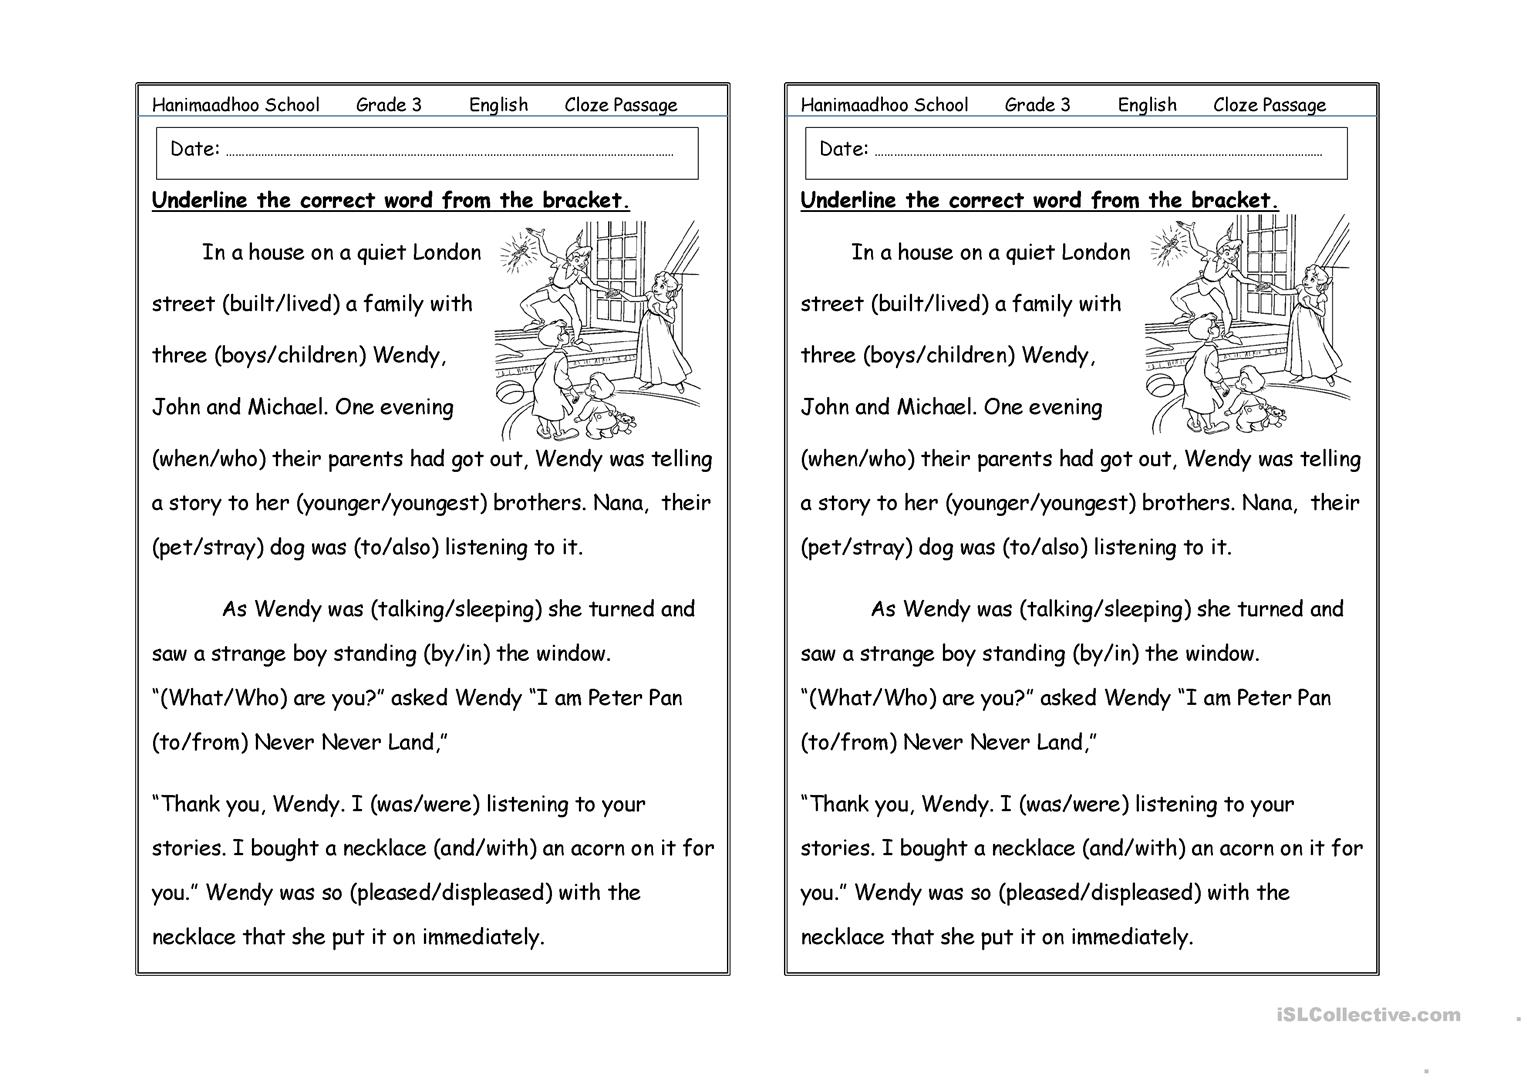 cloze passage worksheet - Free ESL printable worksheets made by ...